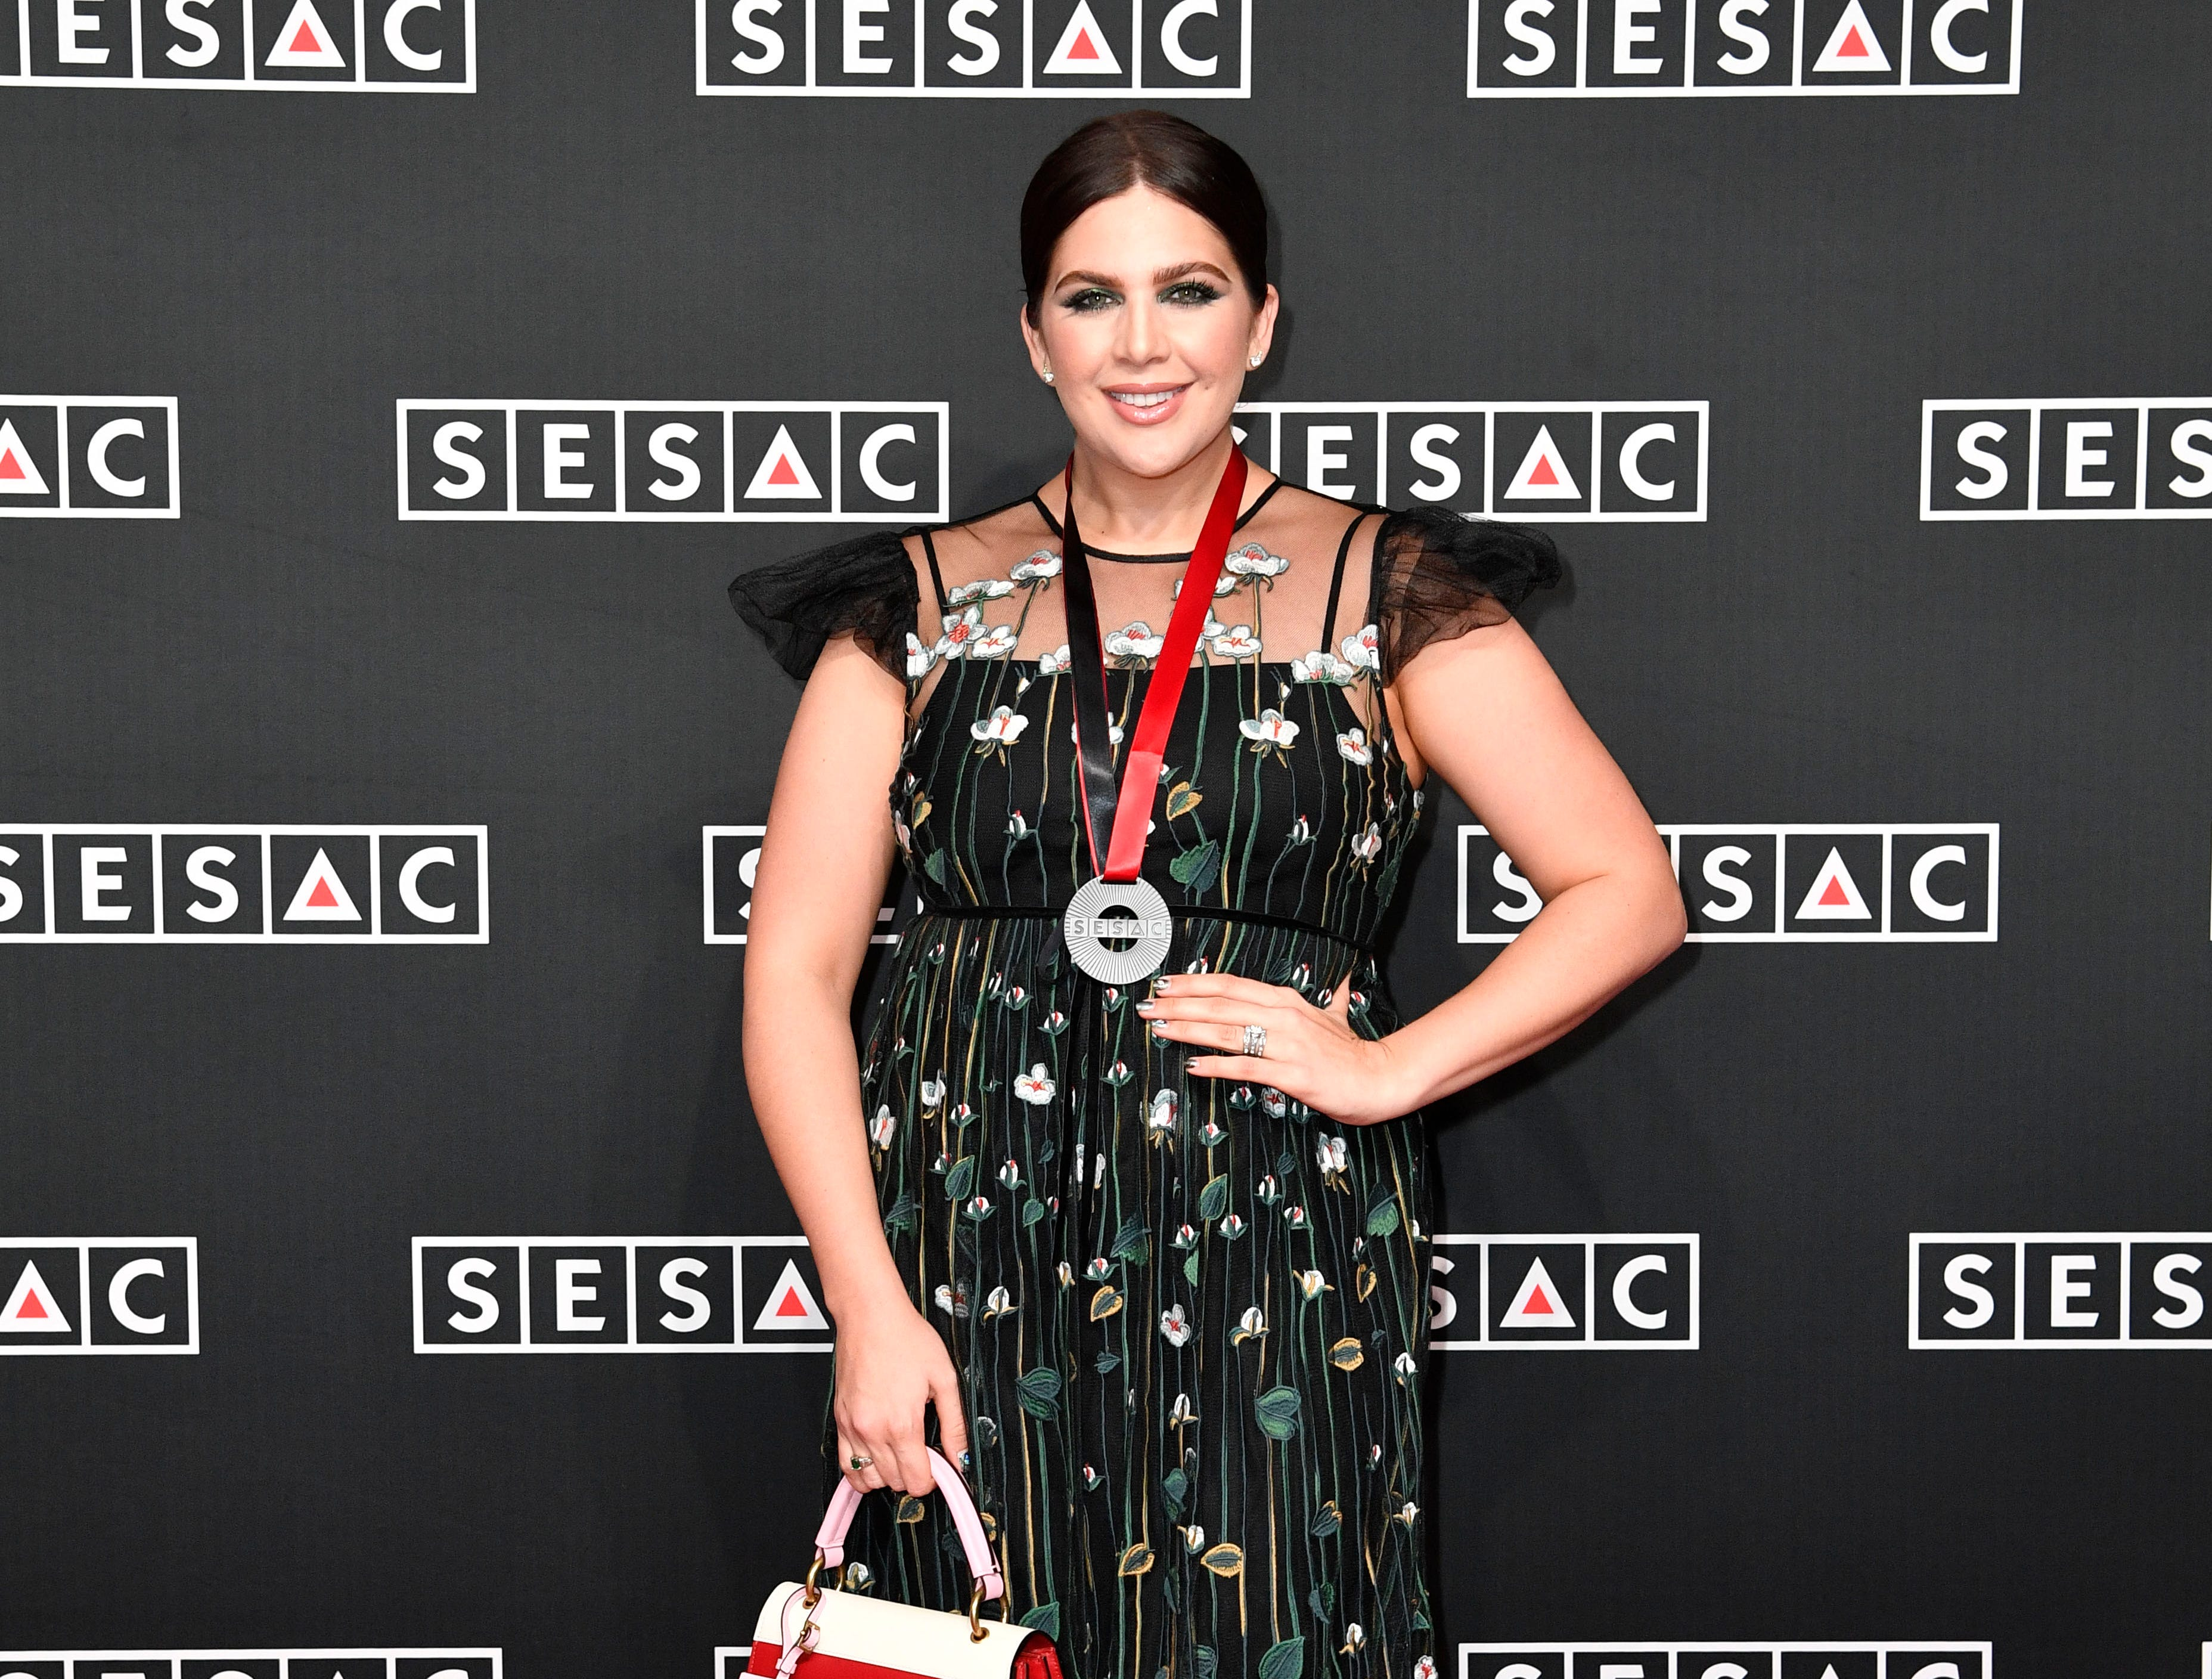 Hillary Scott on the red carpet at the SESAC Nashville Music Awards at the Country Music Hall of Fame and Museum Sunday Nov. 11, 2018, in Nashville, Tenn.